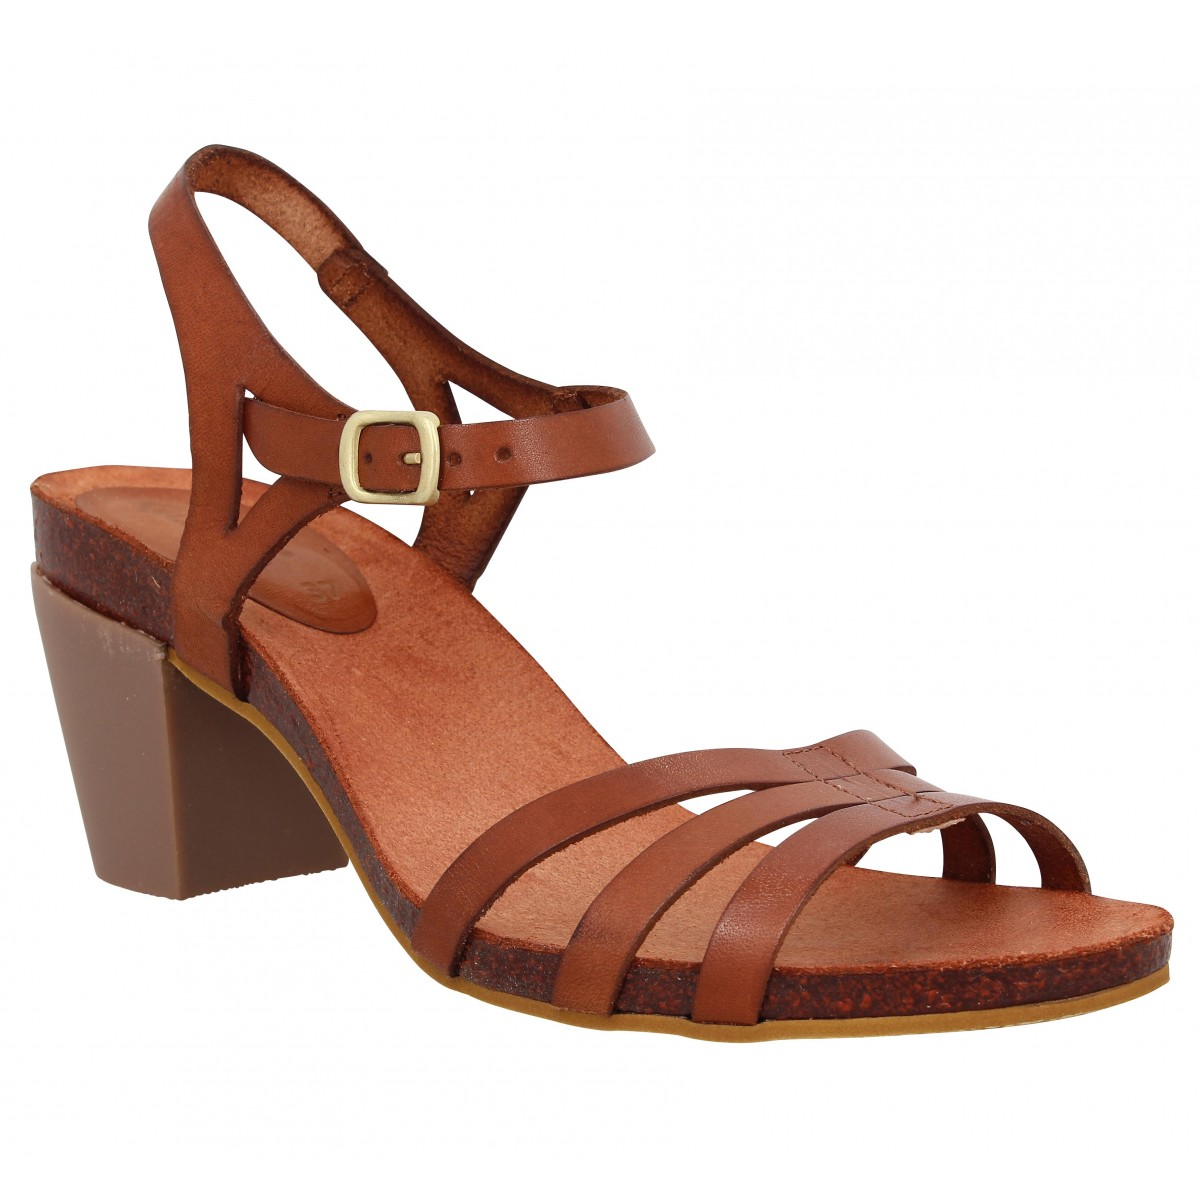 Kickers Femme Pacome Cuir -36-camel